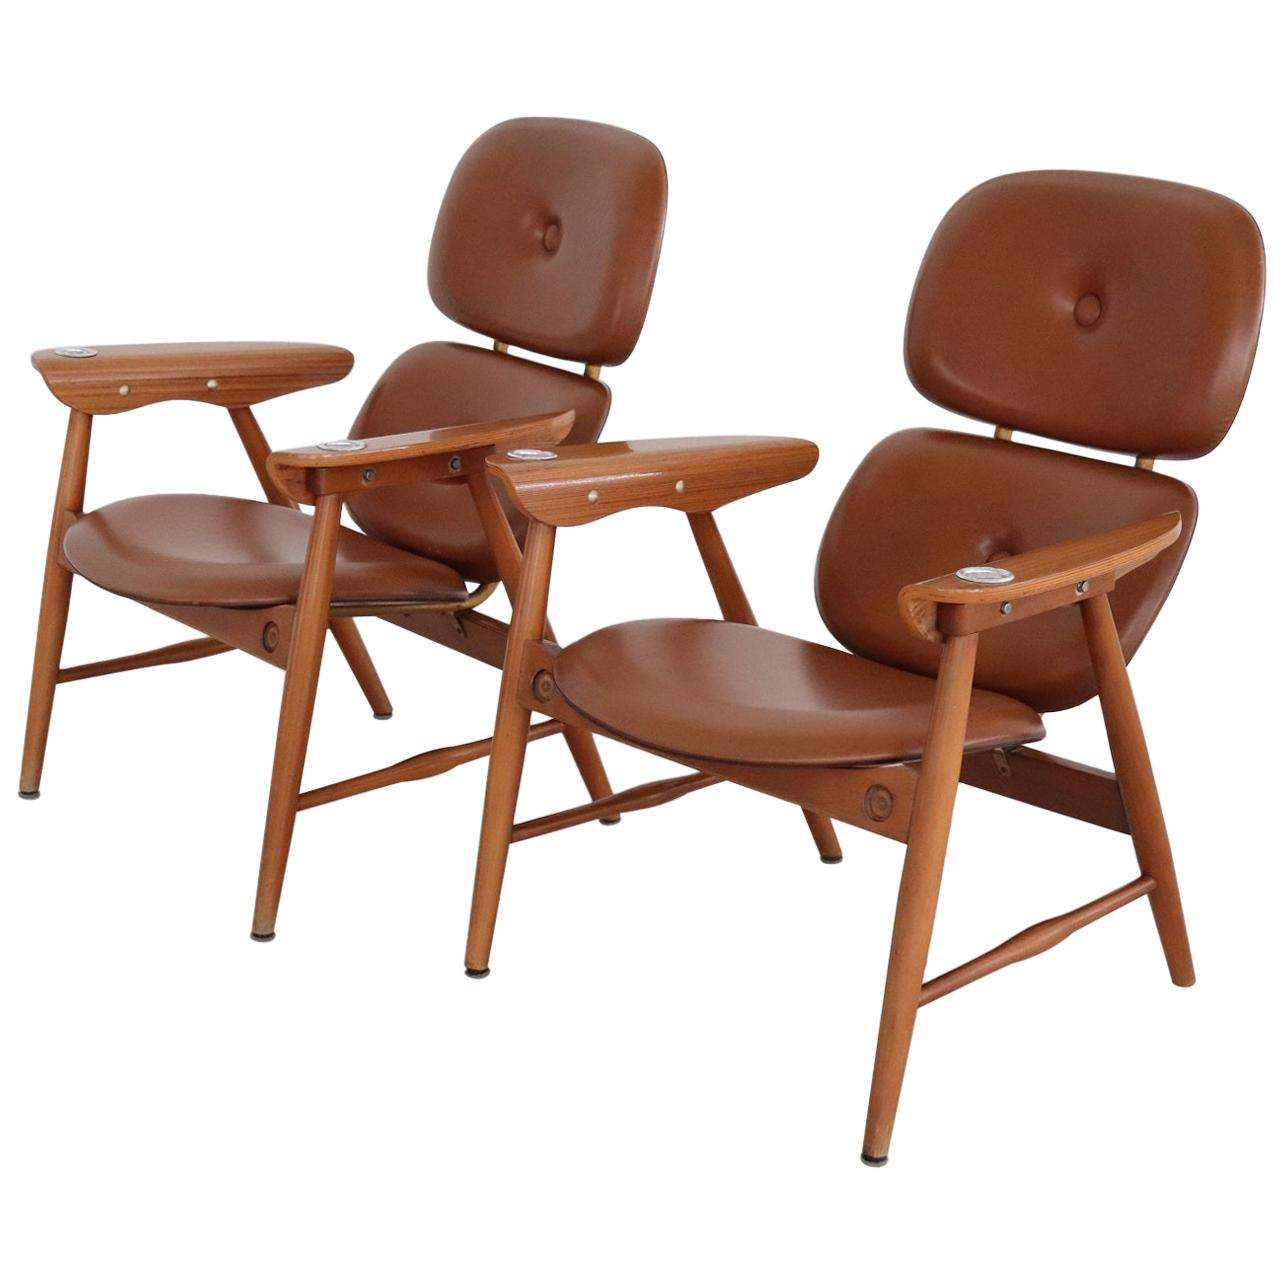 Italian Midcentury Armchairs with Ashtrays and Plywood by Poltronova, 1960s